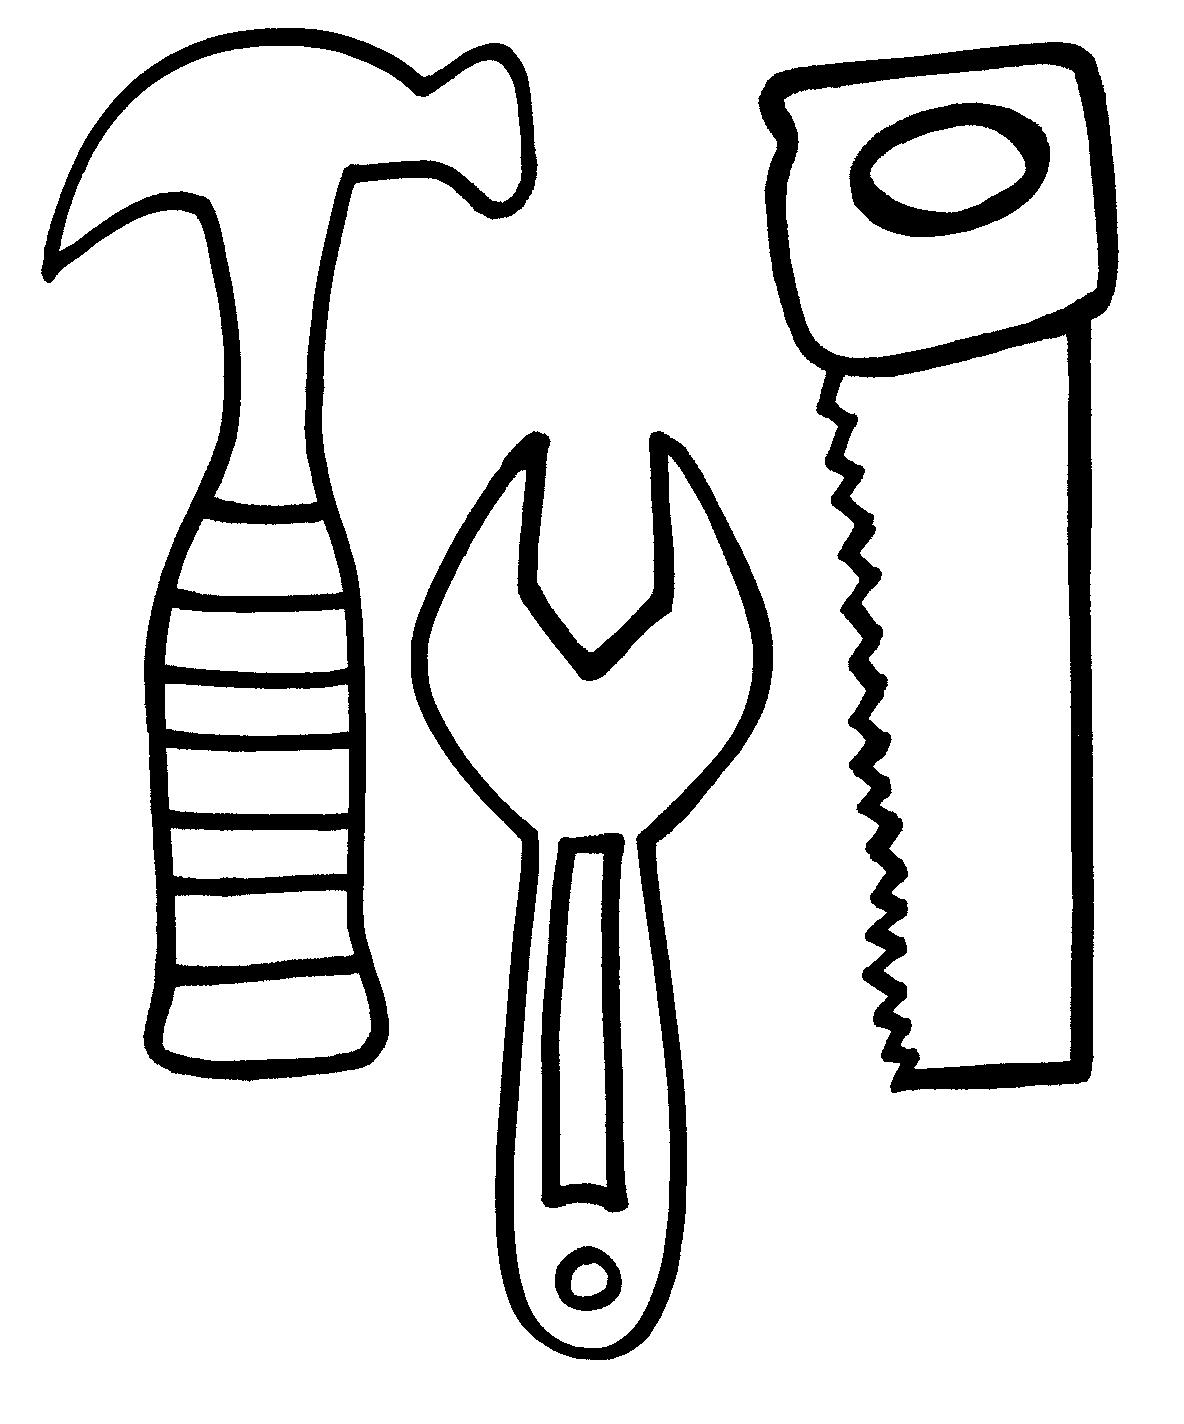 tools coloring page tool coloring pages to download and print for free